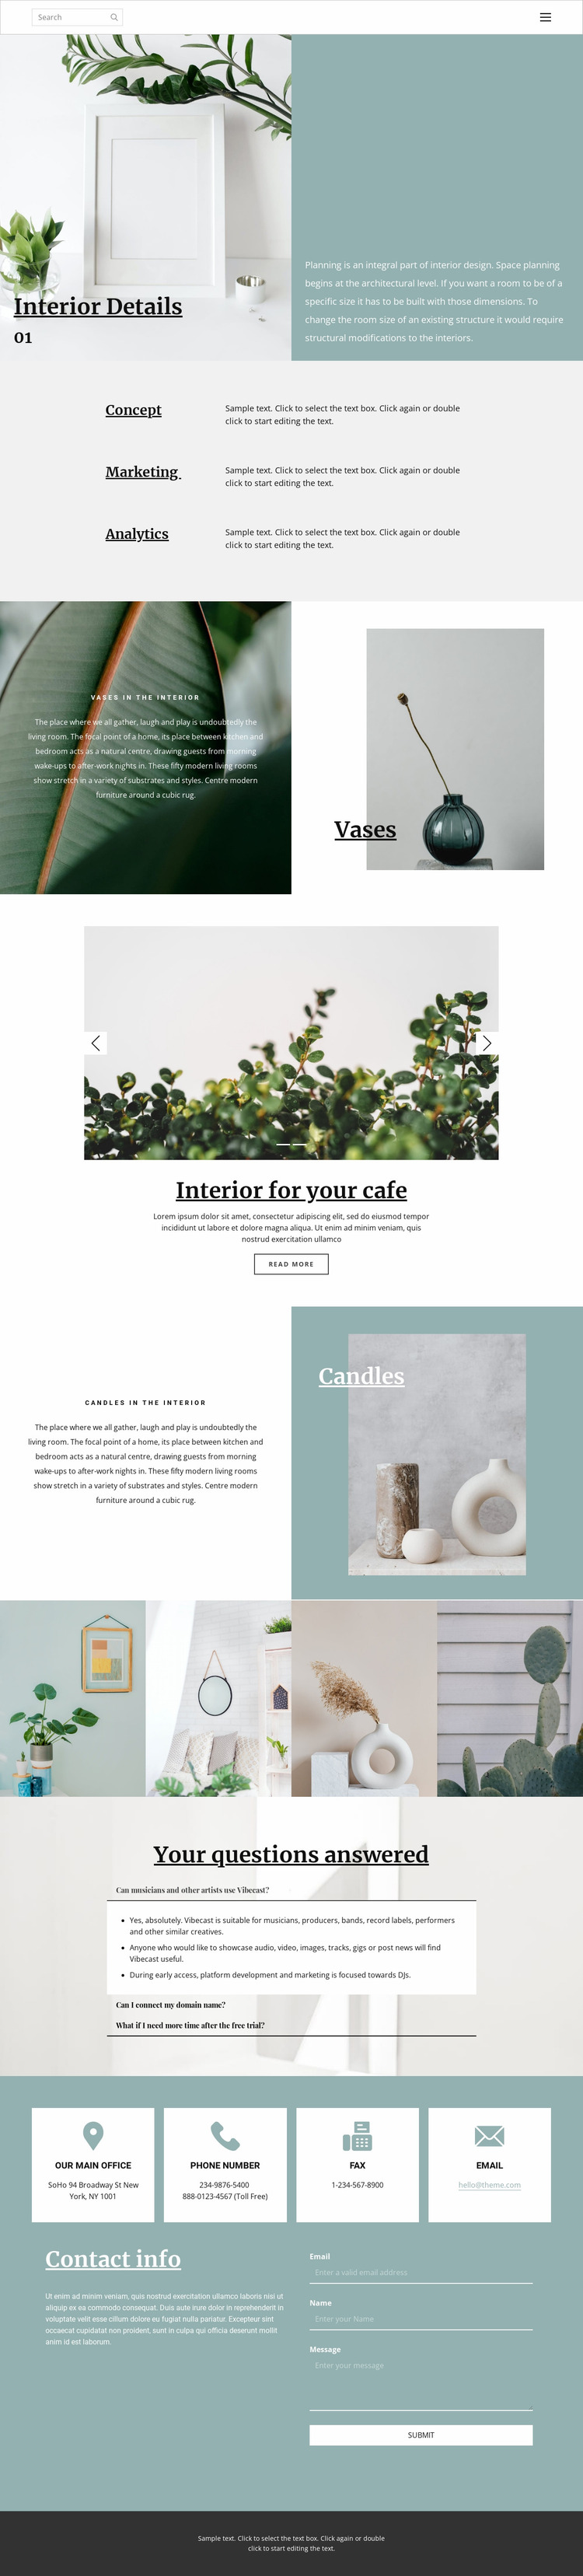 Help in organizing the space at home Website Mockup